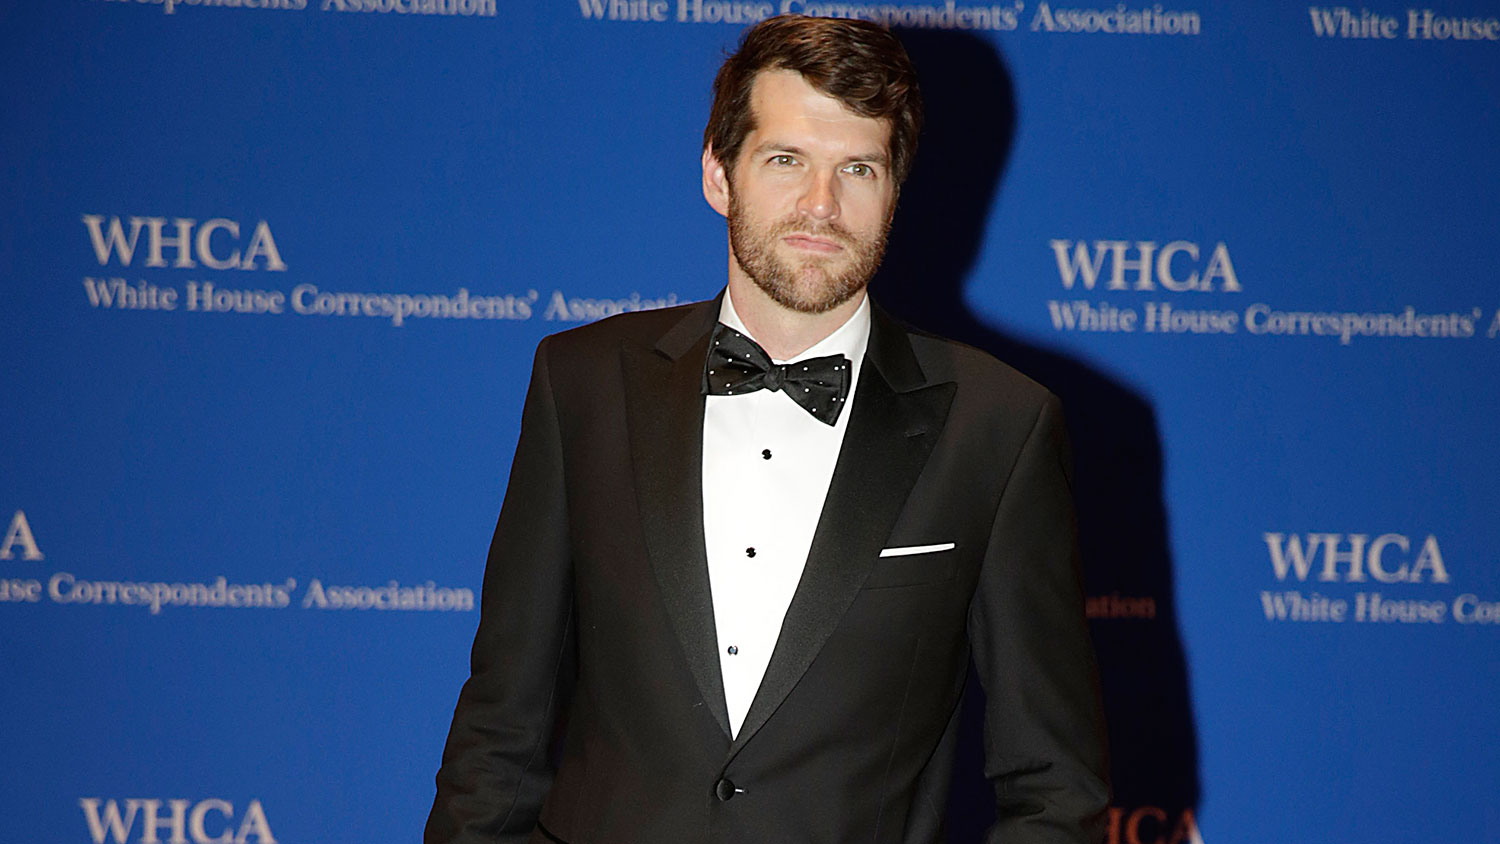 timothy simons wifetimothy simons height, timothy simons, timothy simons wife, timothy simons twitter, timothy simons instagram, timothy simons net worth, timothy simons imdb, timothy simons interview, timothy simons shirtless, timothy simons paul scheer, timothy simons twins, timothy simons brother, timothy simons gay, timothy simons bio, timothy simons college, timothy simons walking dead, timothy simons goosebumps, timothy simons married